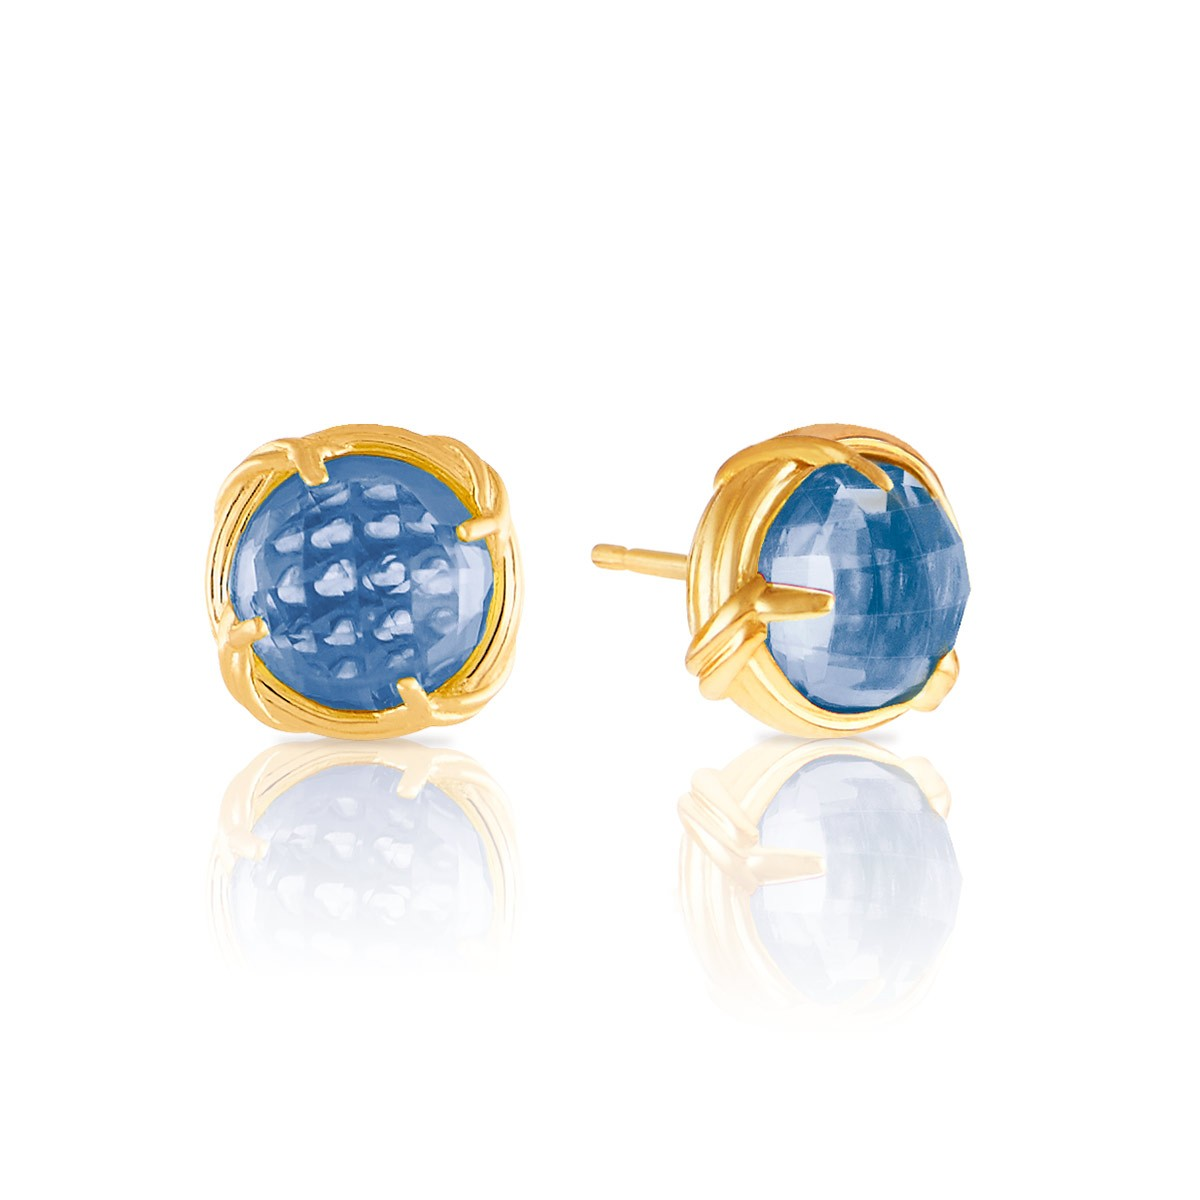 secret london jewellery kit stud the garden heath of earrings blue designer topaz picture